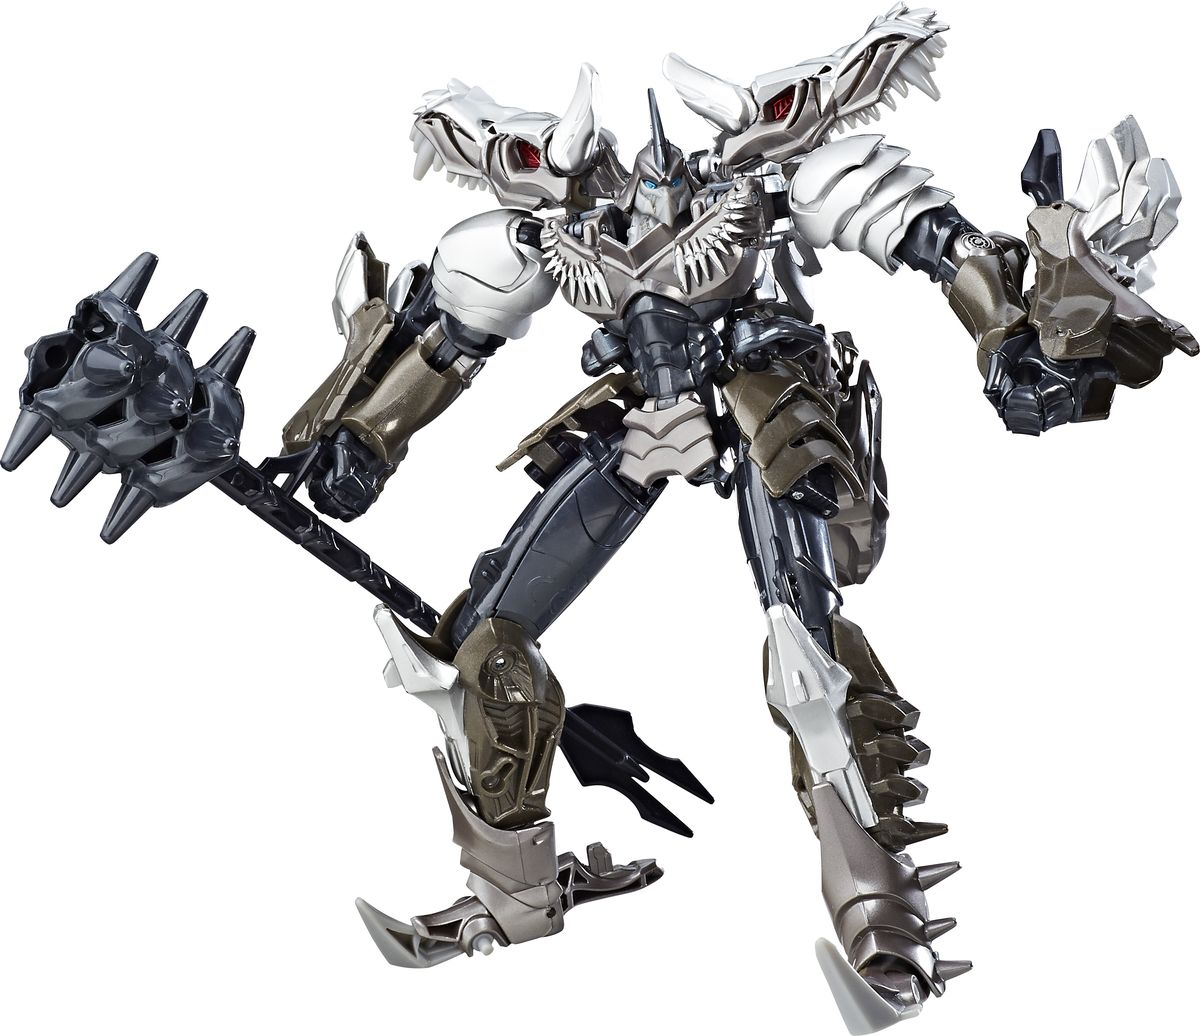 Transformers Трансформер Premier Edition Grimlock transformers трансформер combiner force great byte & sideswipe